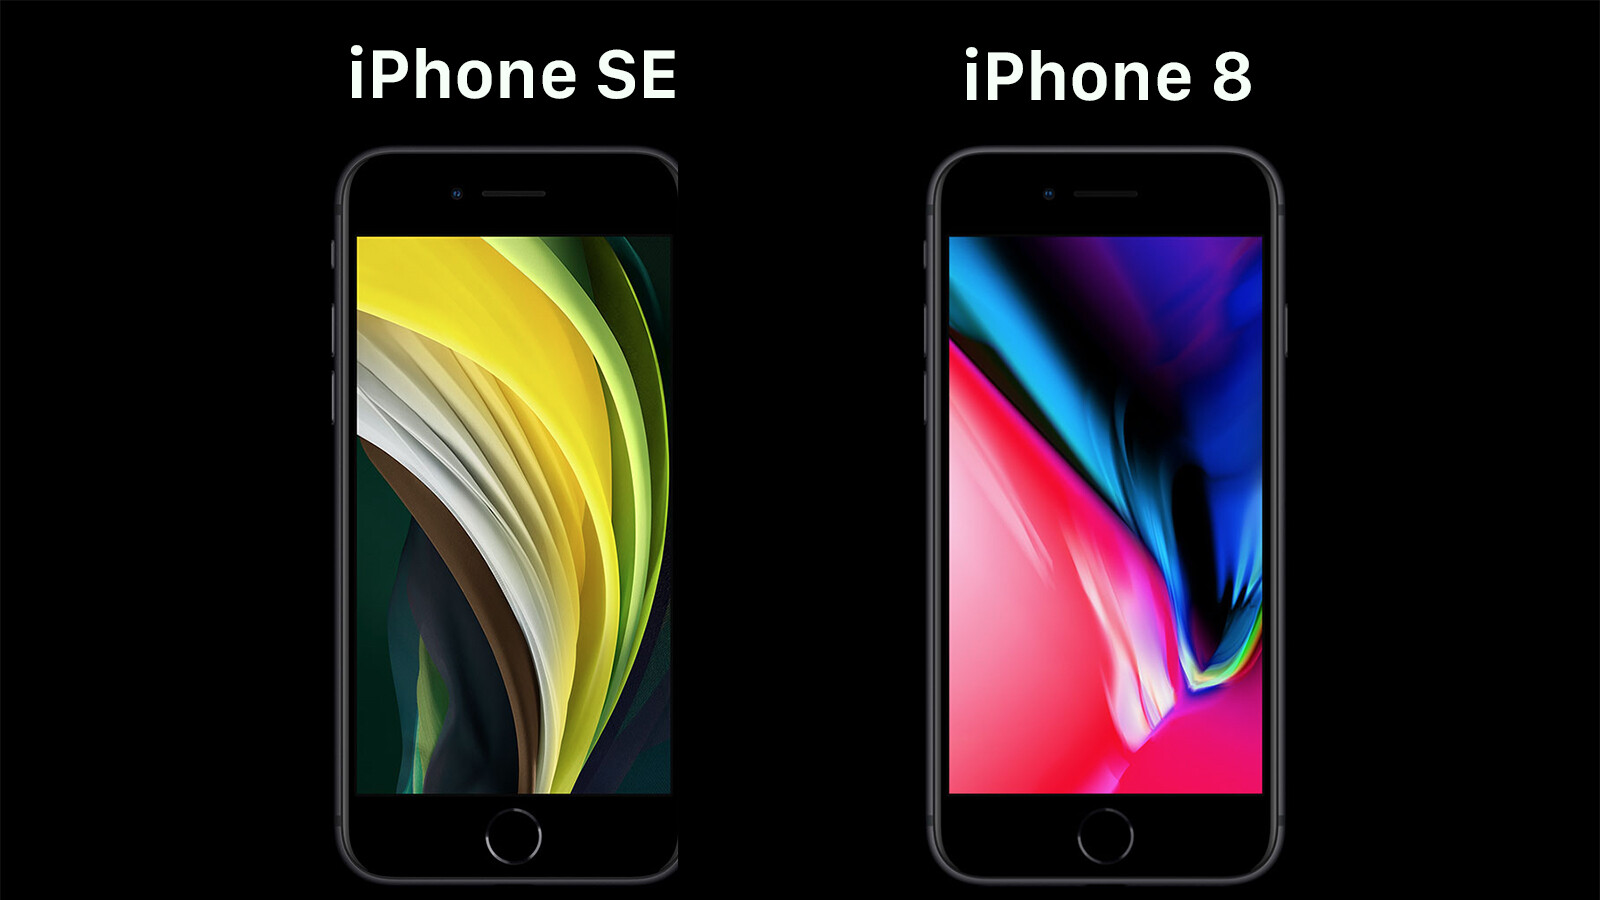 iPhone SE (2020) vs iPhone 8: differences - PhoneArena